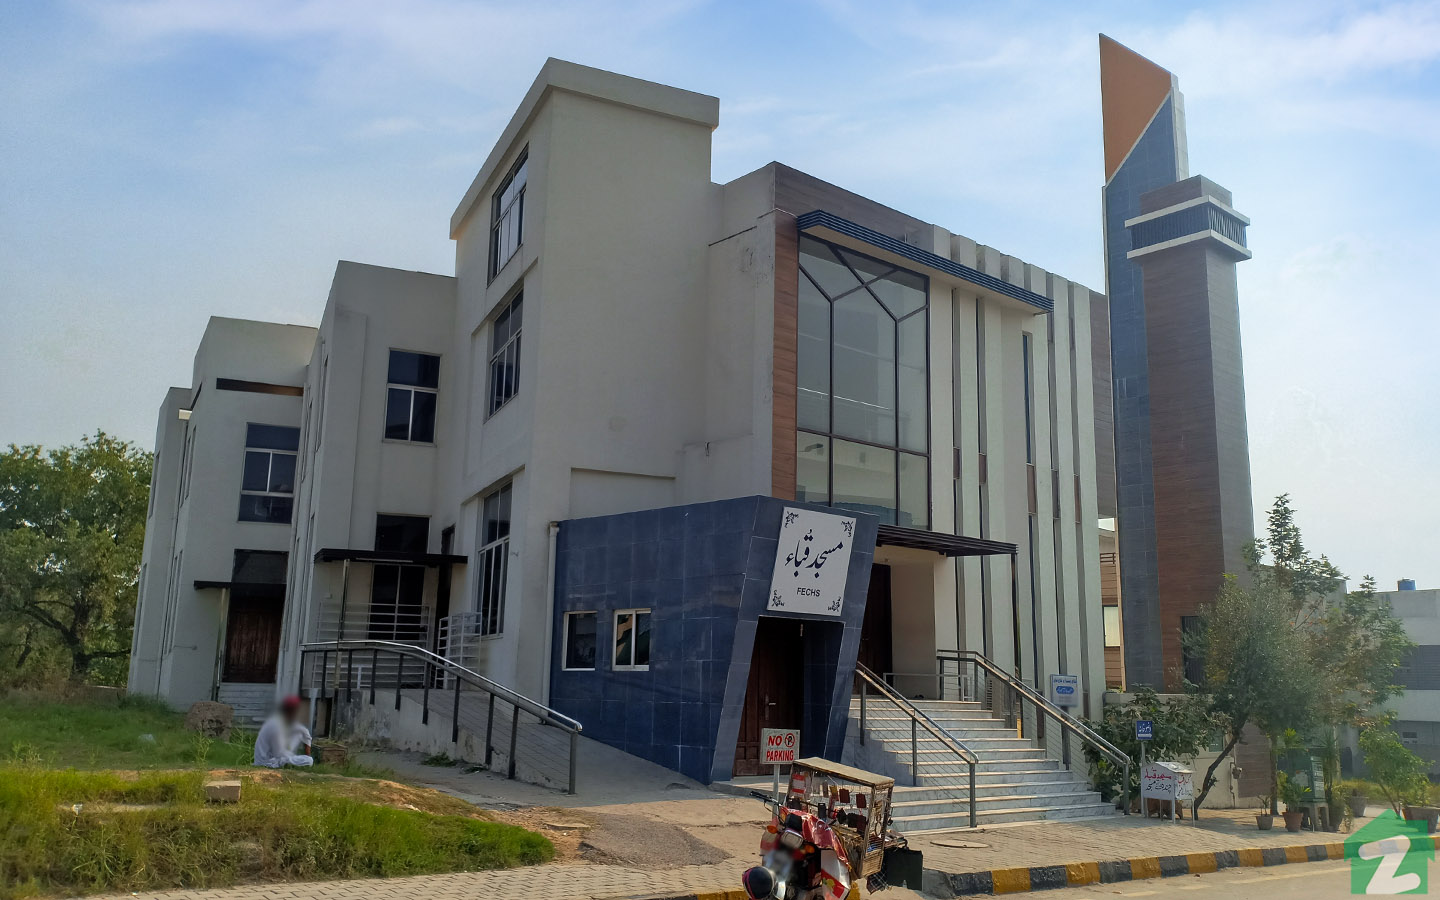 Mosques in E-11, Islamabad